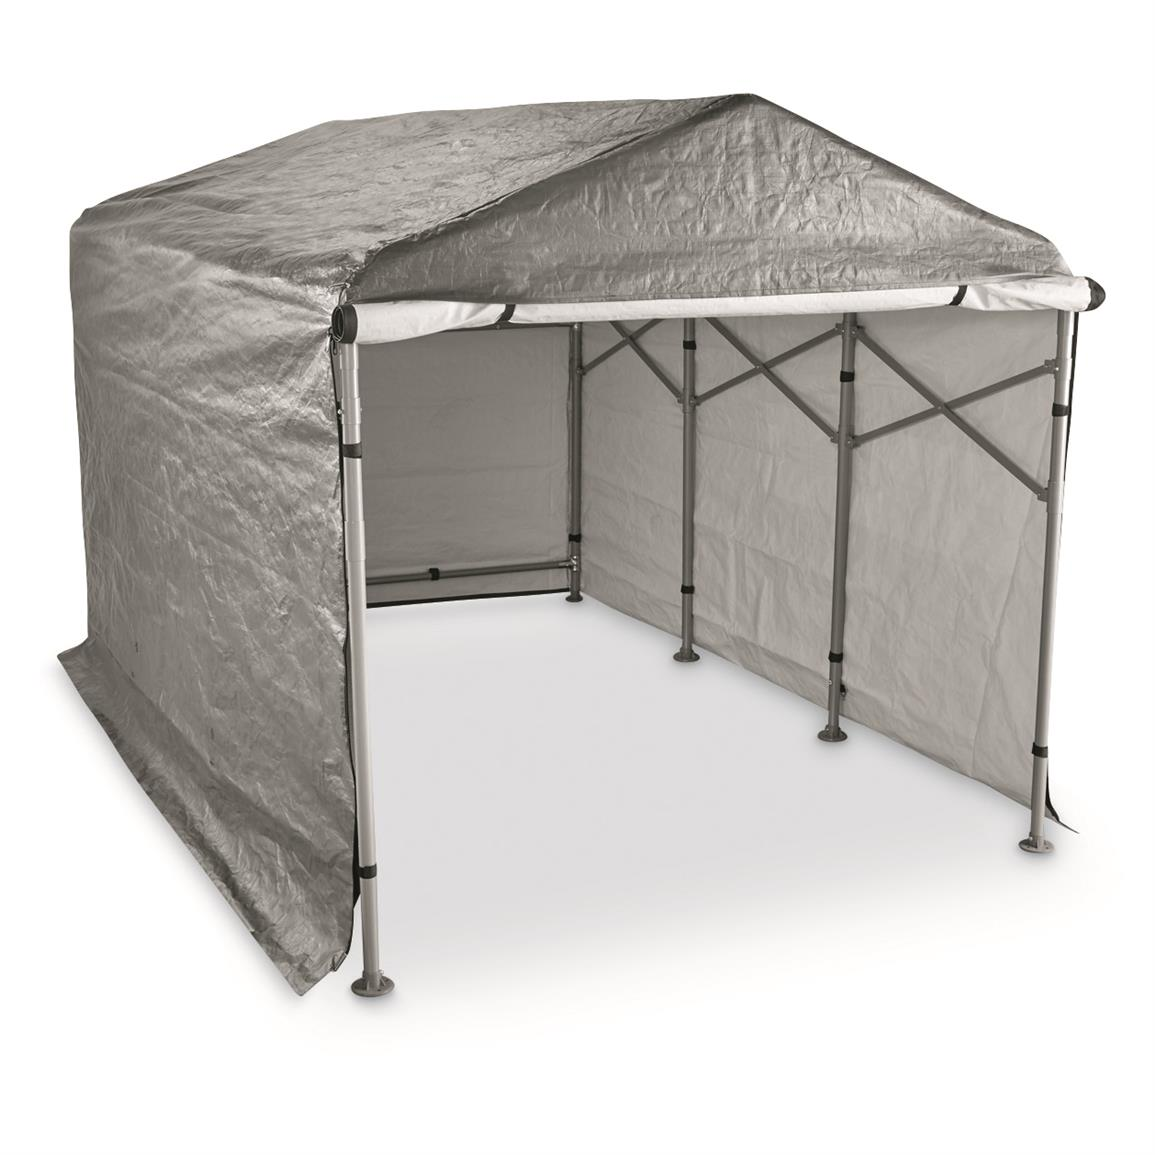 Guide Gear Foldable Shed 9' x 6'